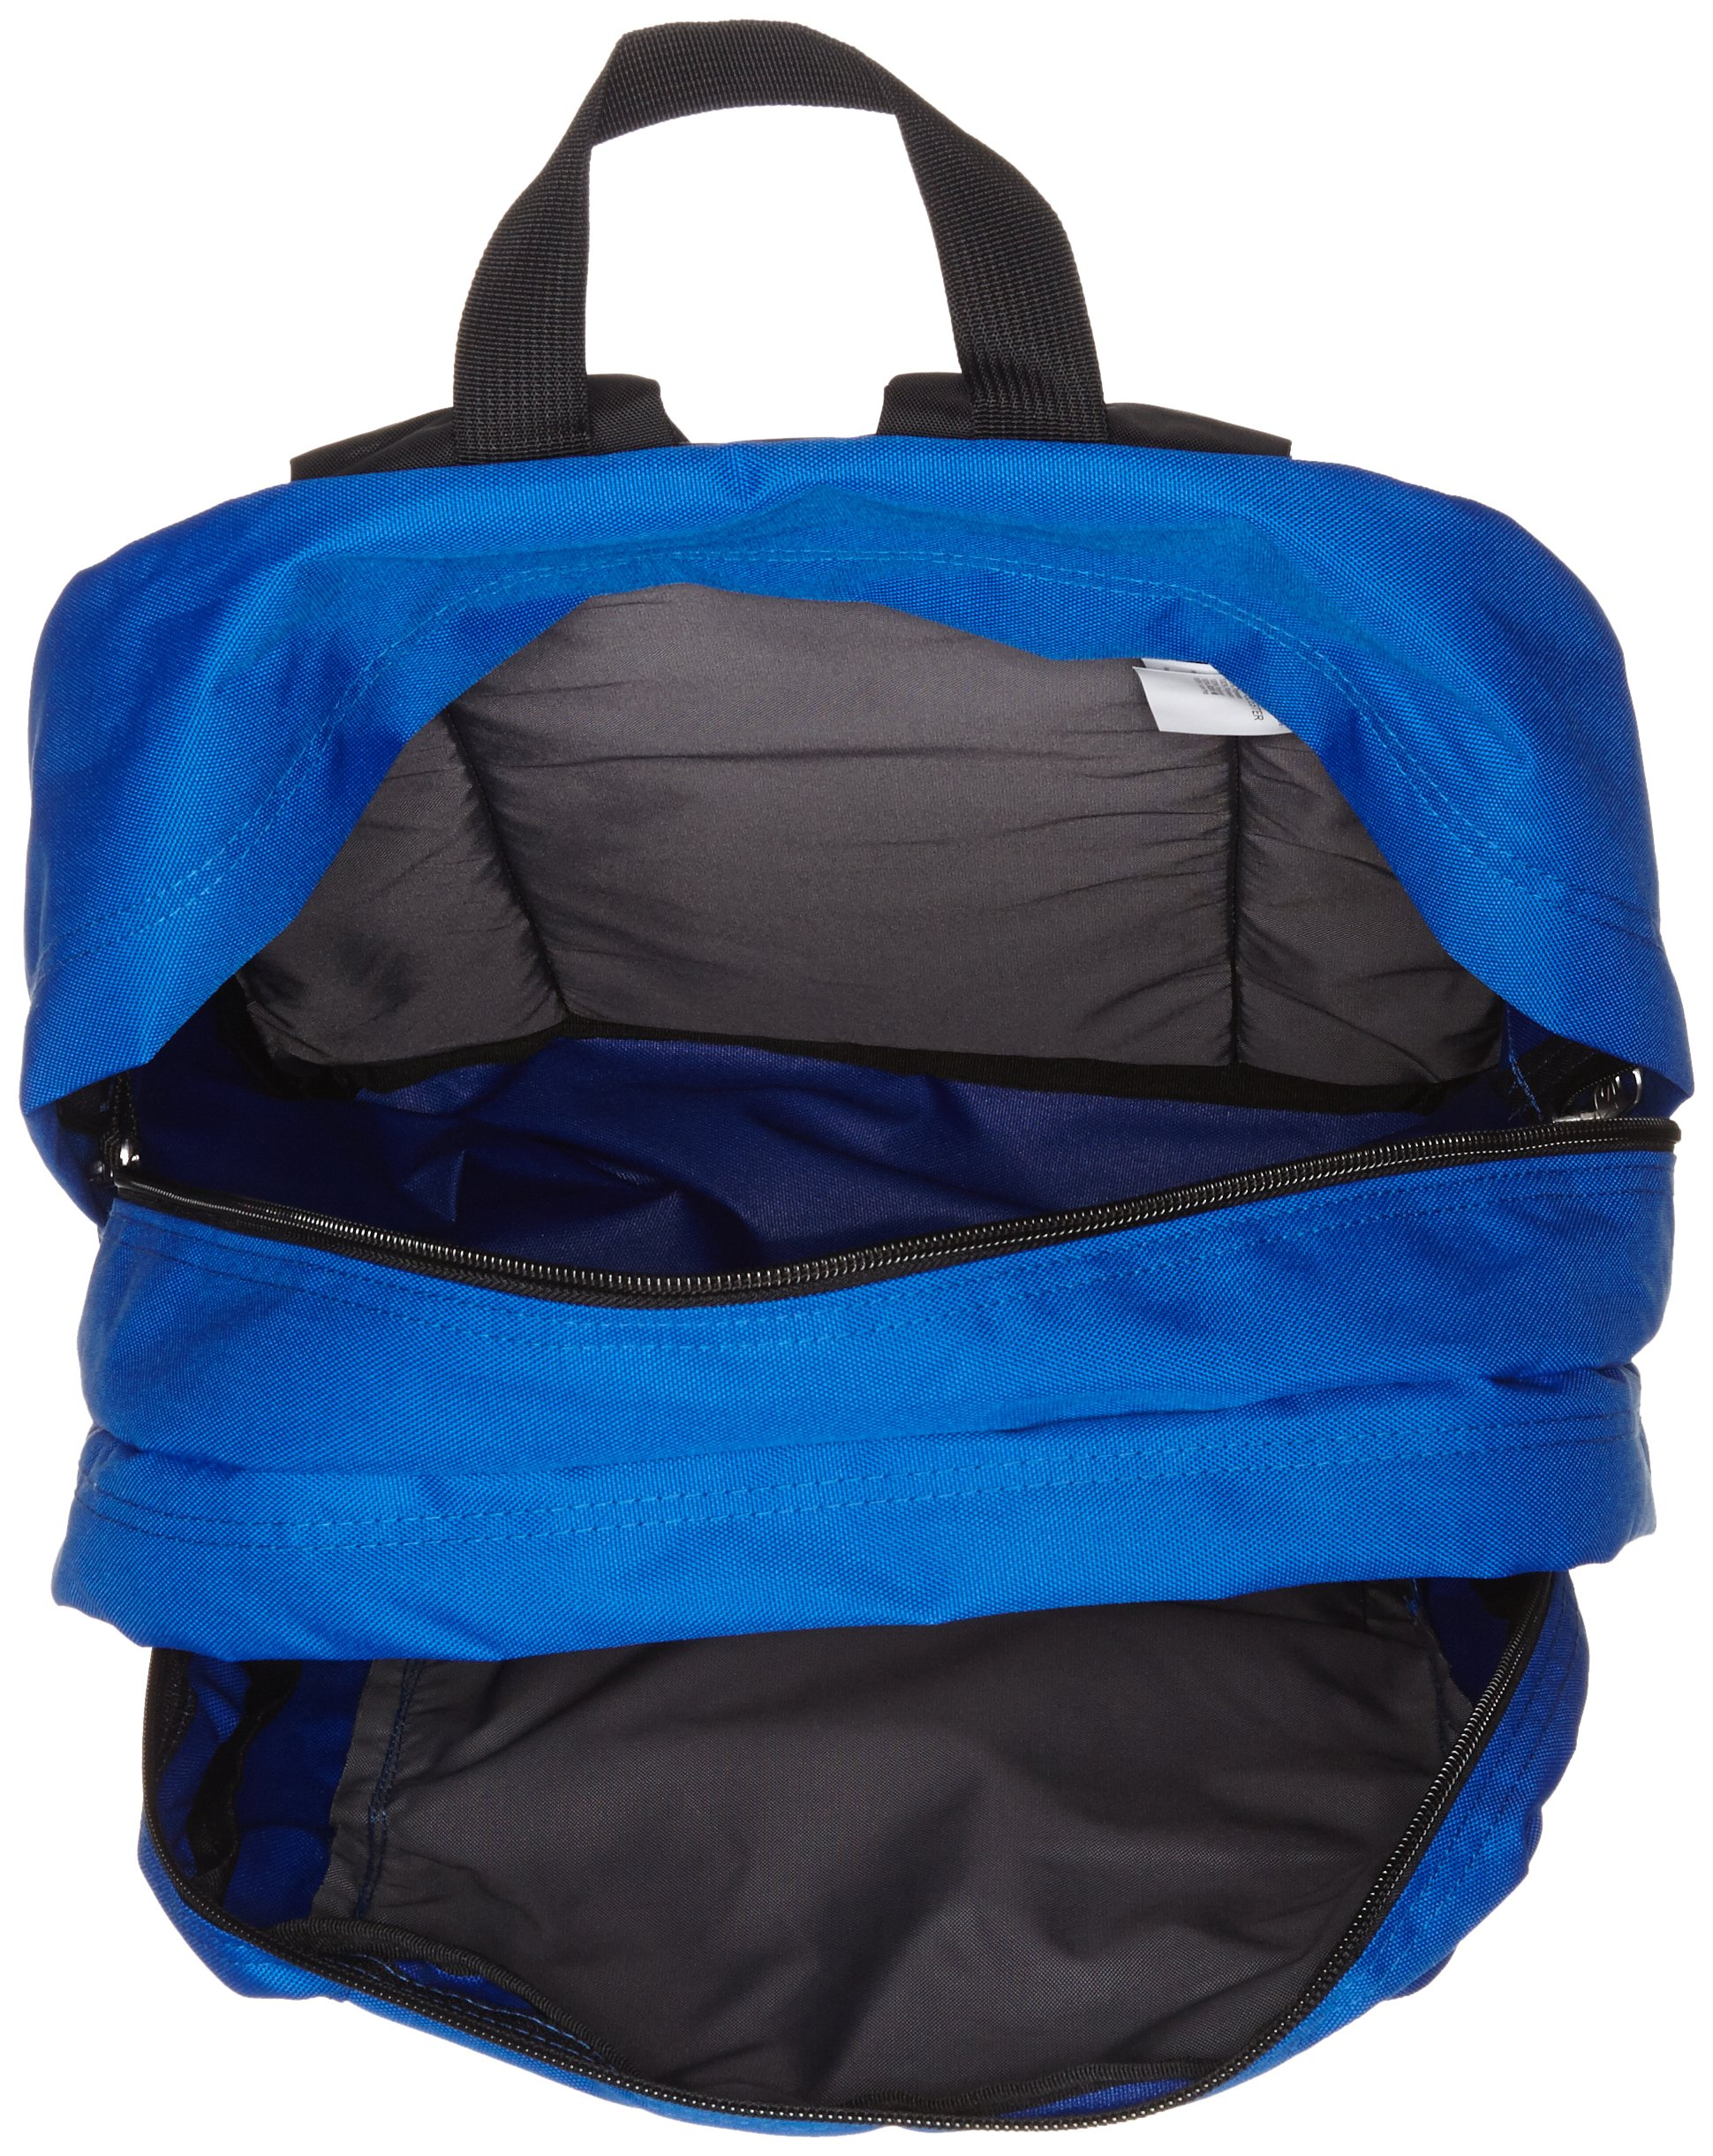 JanSport Big Student Classics Series Backpack - Blue Streak by JanSport (Image #4)